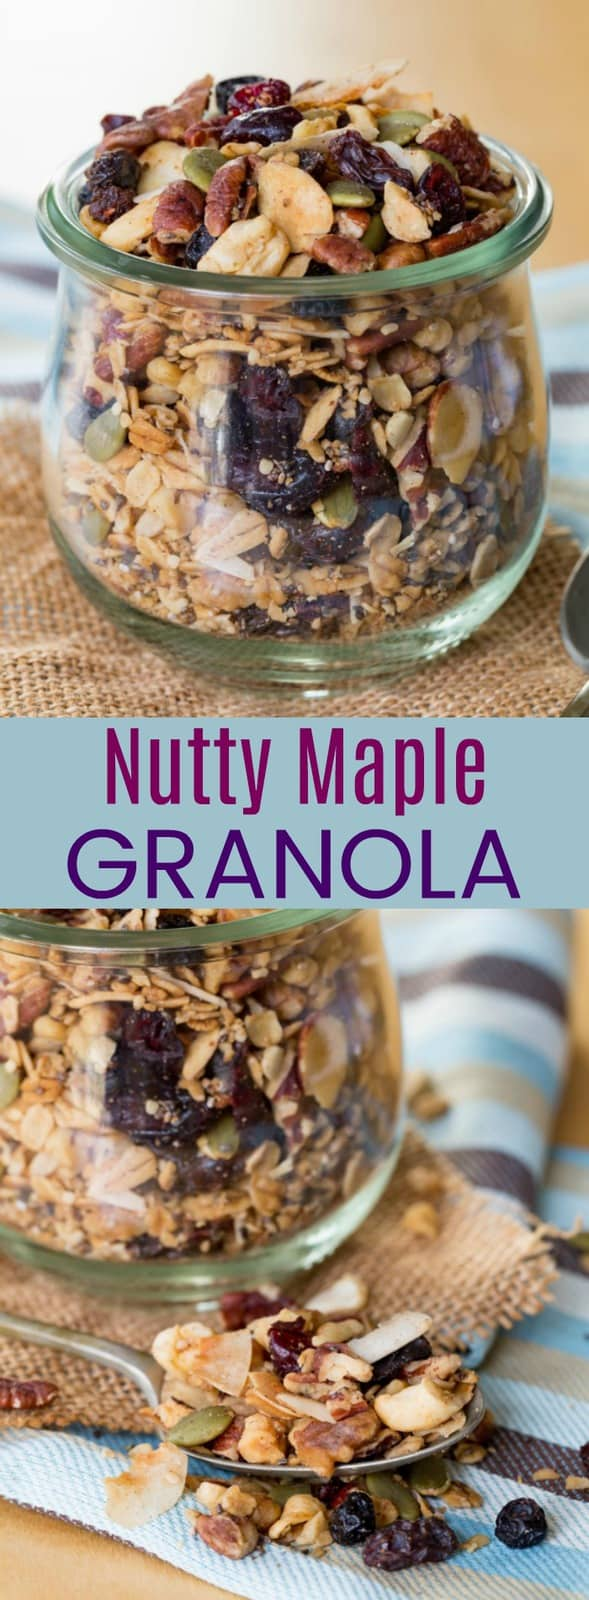 Nutty Maple Granola Recipe from Cupcakes and Kale Chips